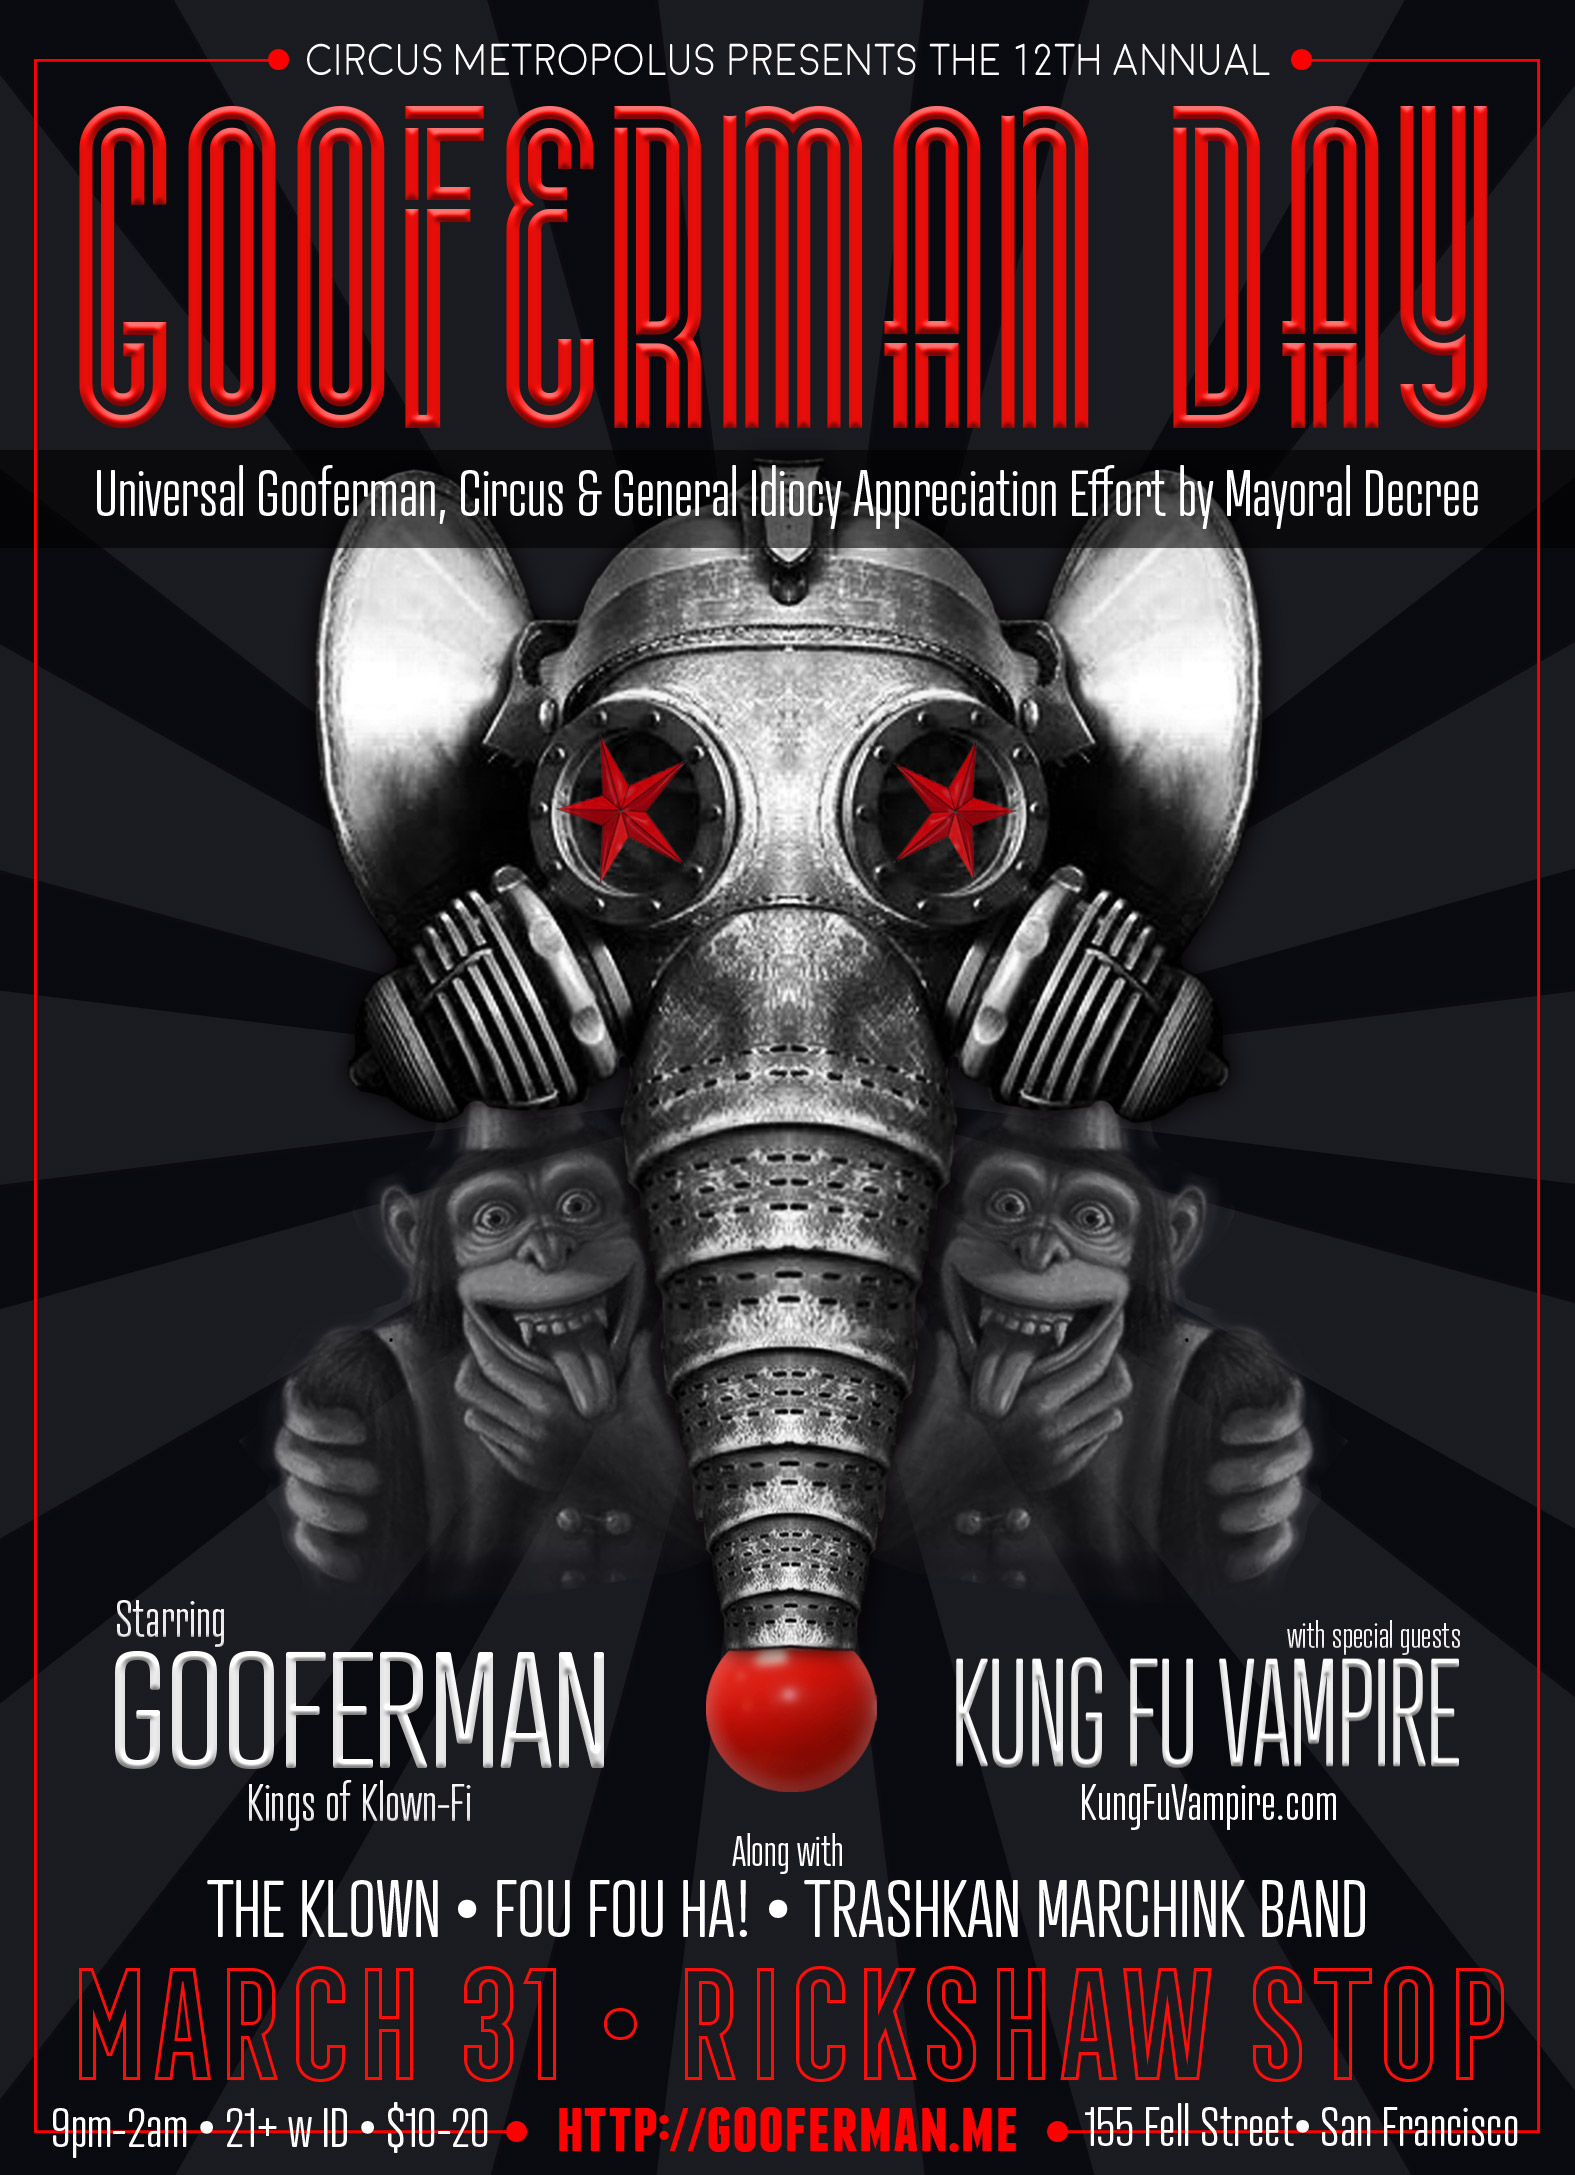 Circus Metropolus presents the 12th Annual Gooferman Day celebration, starring Gooferman, The Klown, Fou Fou Ha!, TrashKan Marchink Band, and utter Special Guests - Saturday, March 31, 2018 - Rickshaw Stop in San Francisco